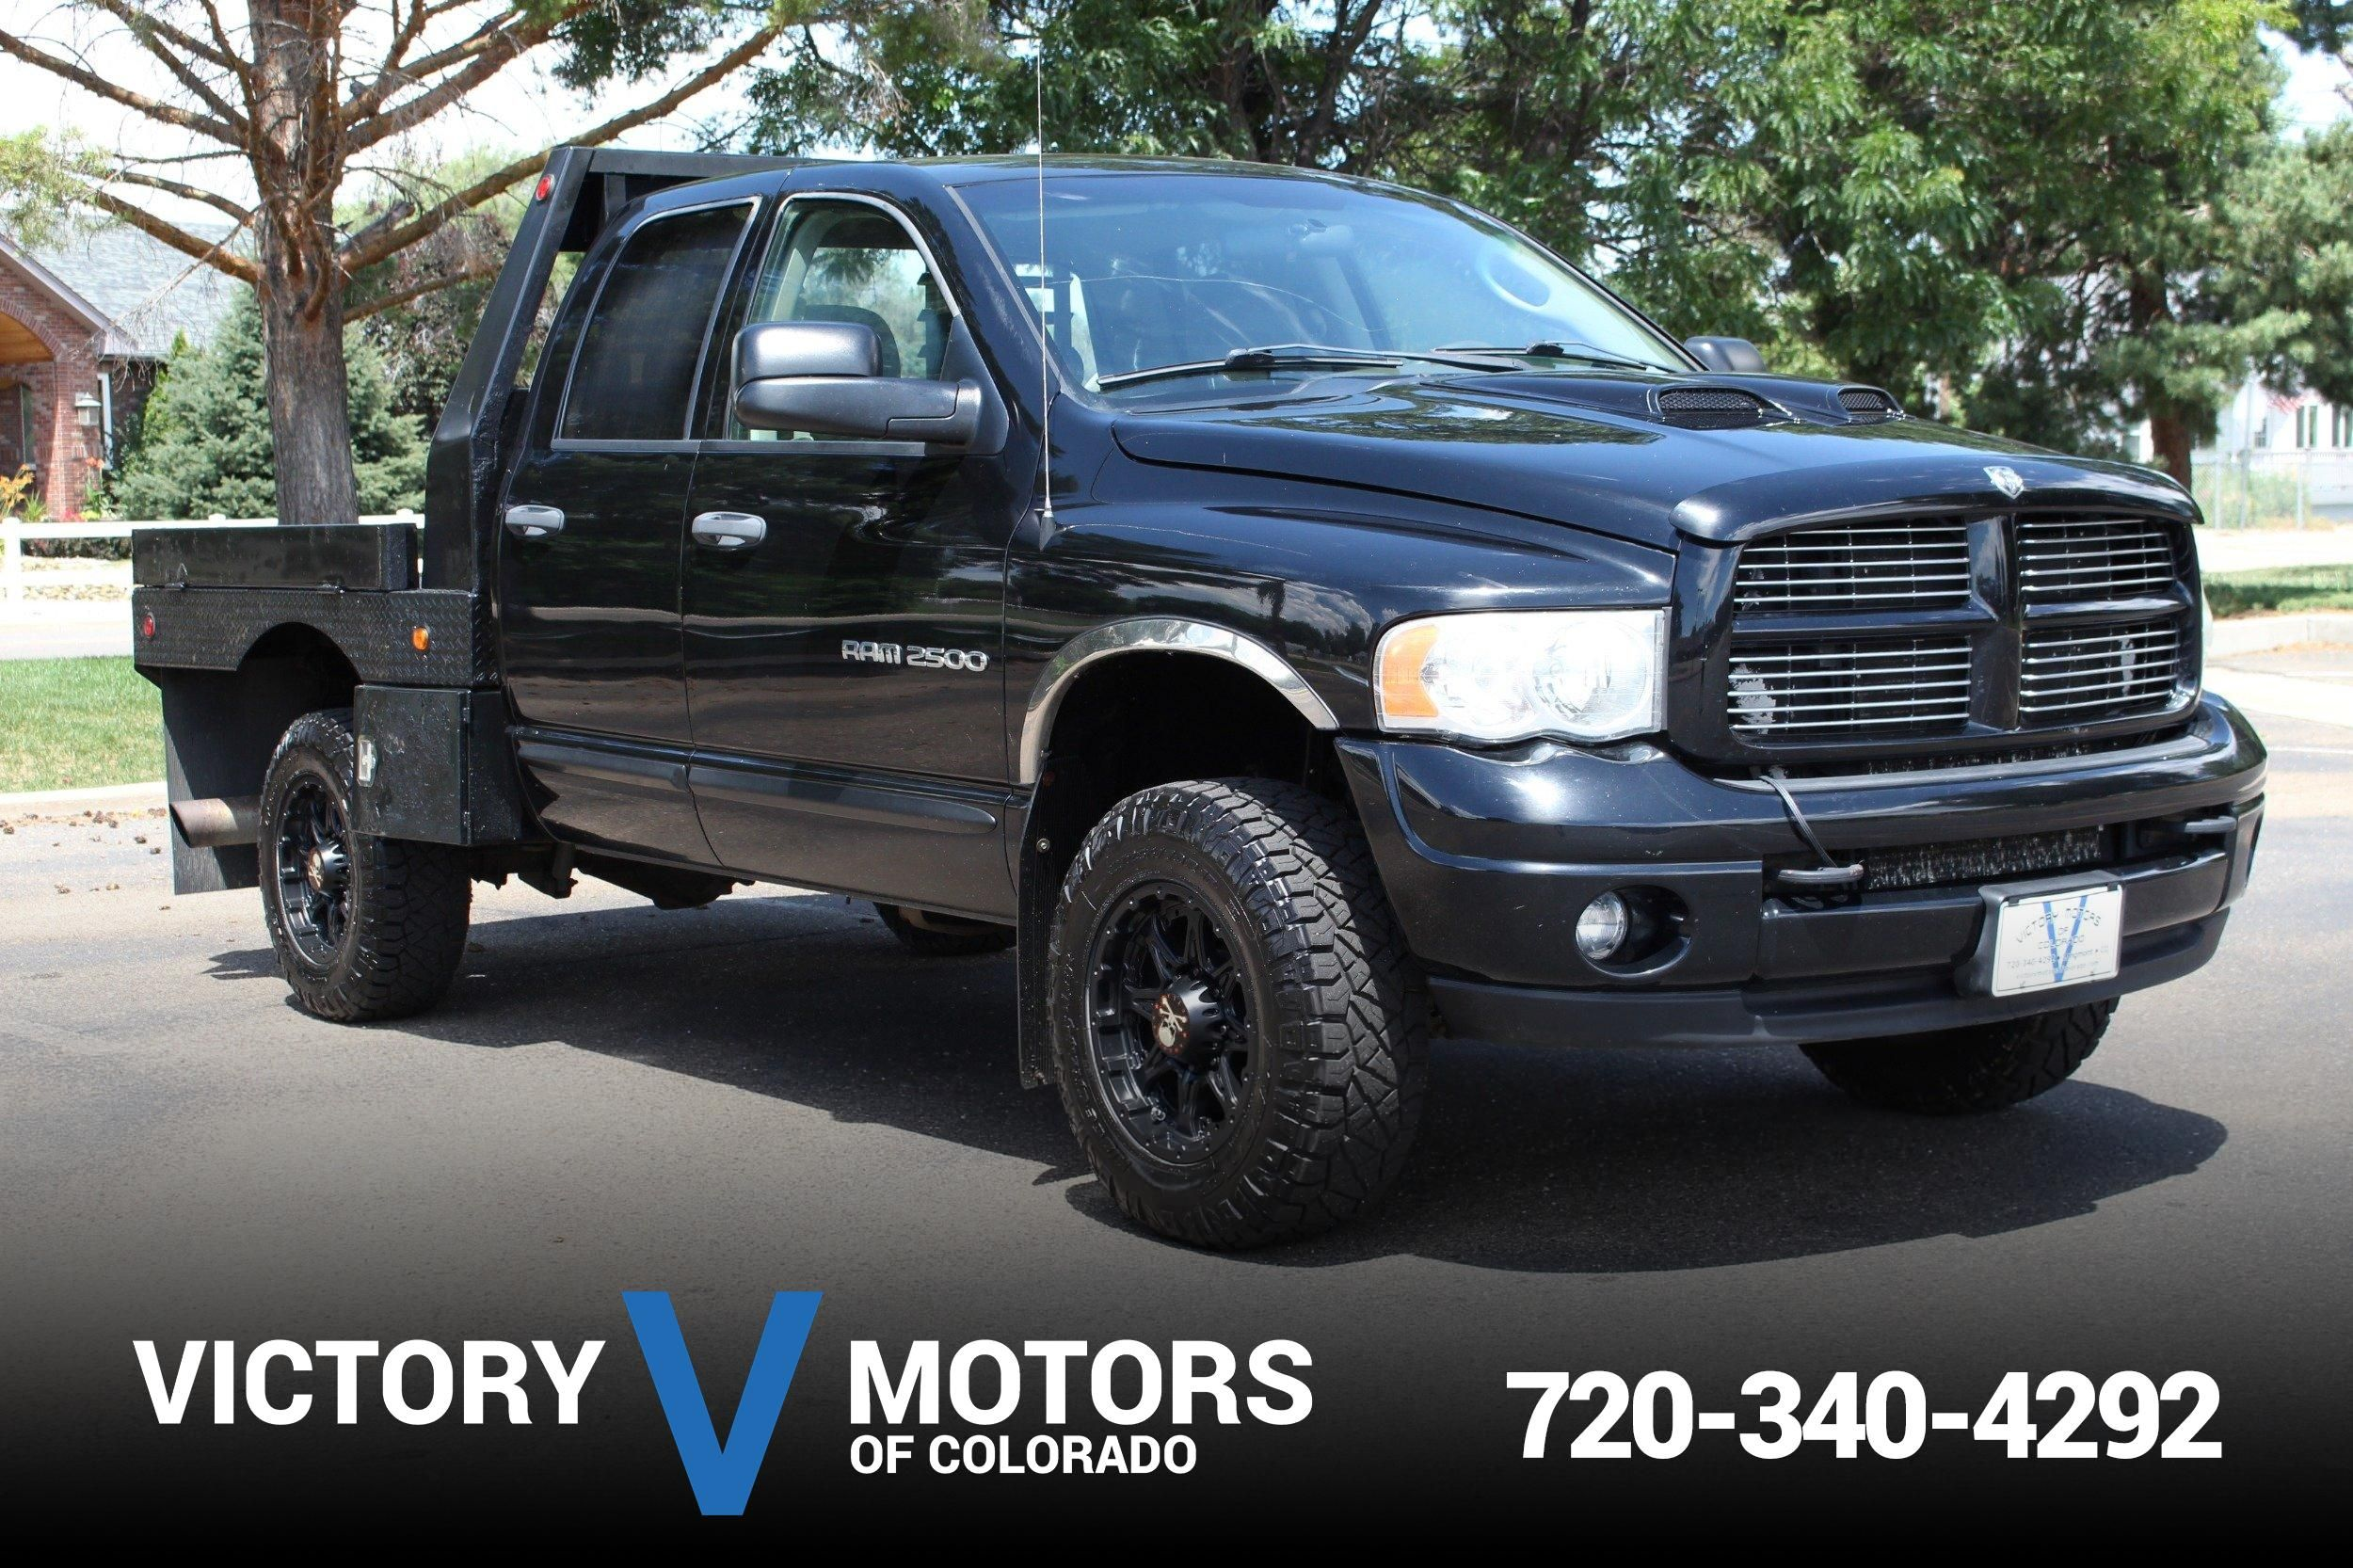 2004 Dodge Ram 2500 Slt Victory Motors Of Colorado